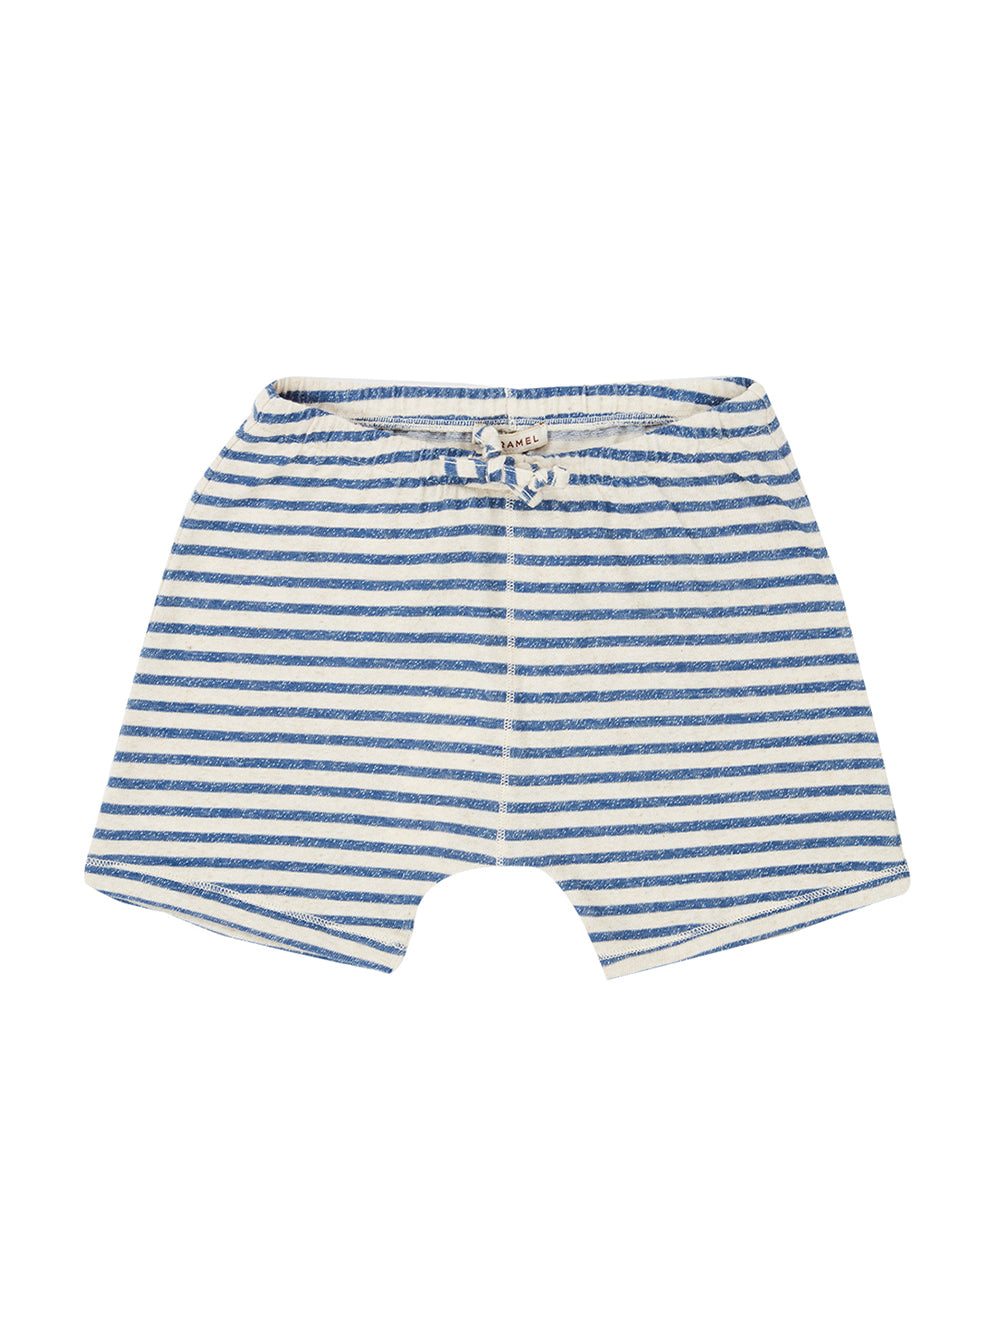 Piranha Blue Stripe Shorts